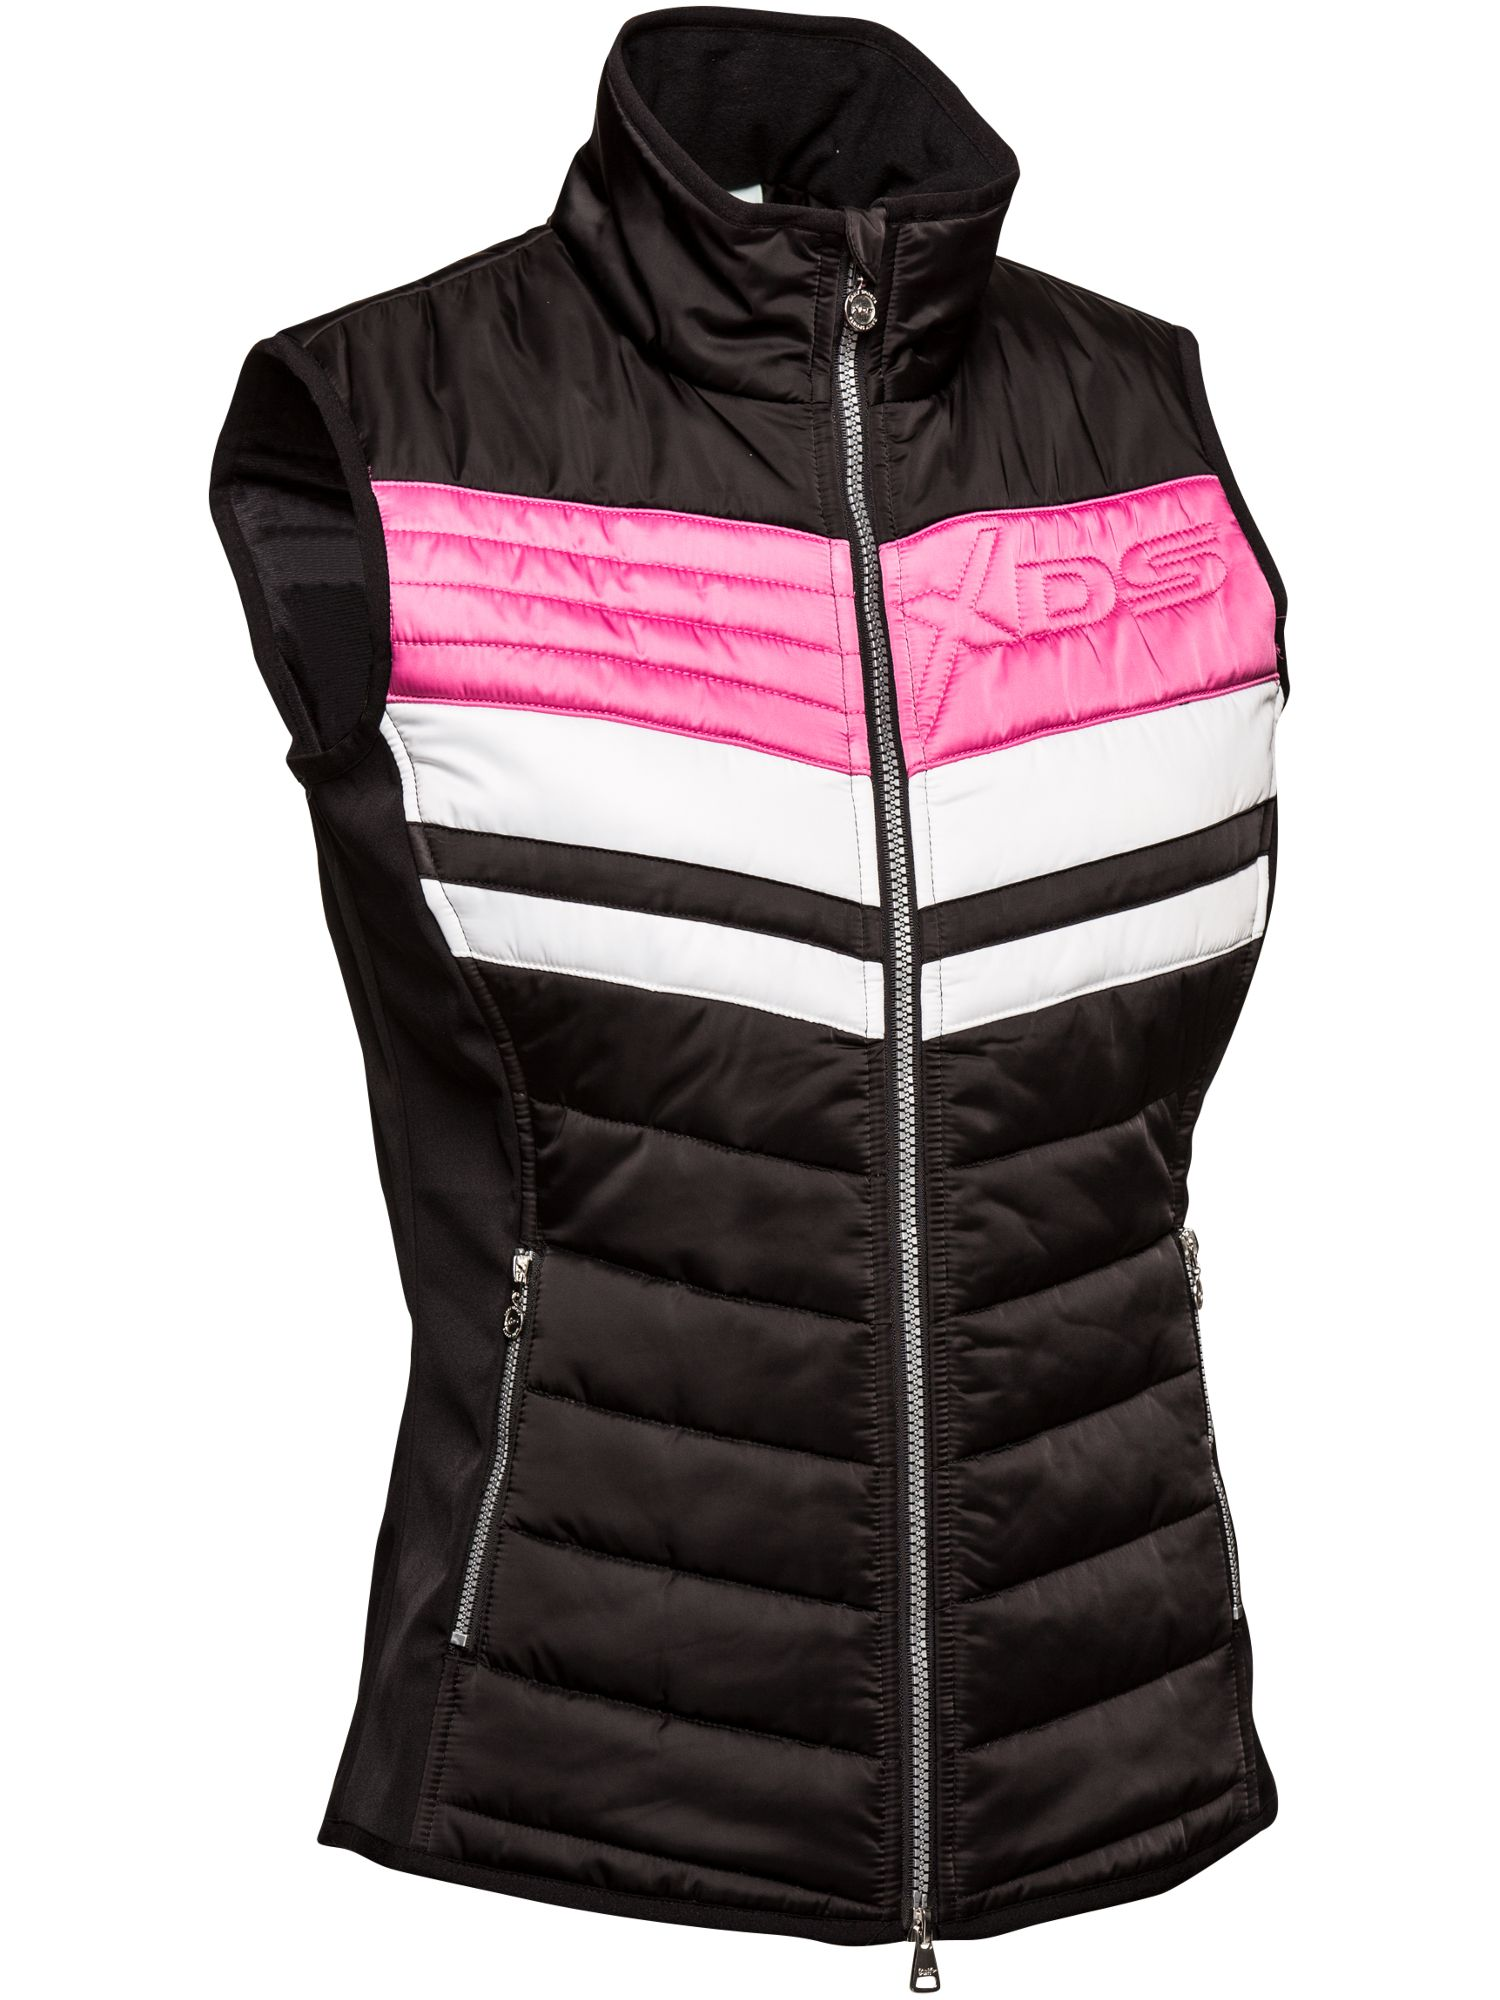 Daily Sports Daily Sports Alberta wind vest, Black